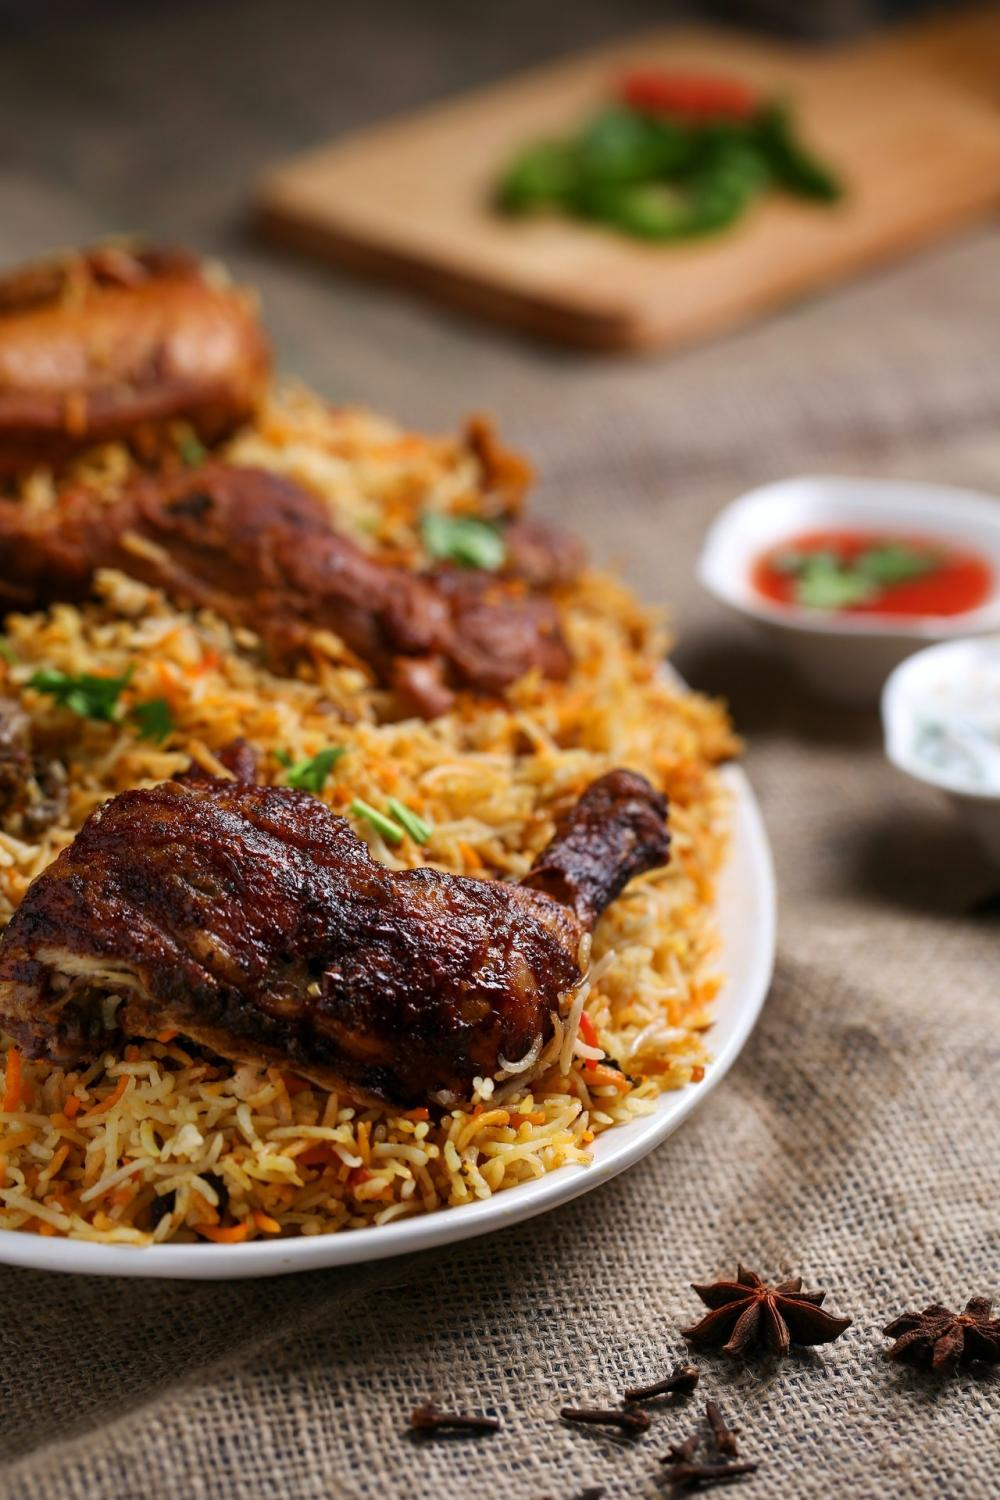 The Weekend Leader - Barbeque-Nation to grow delivery business, open 20 new outlets